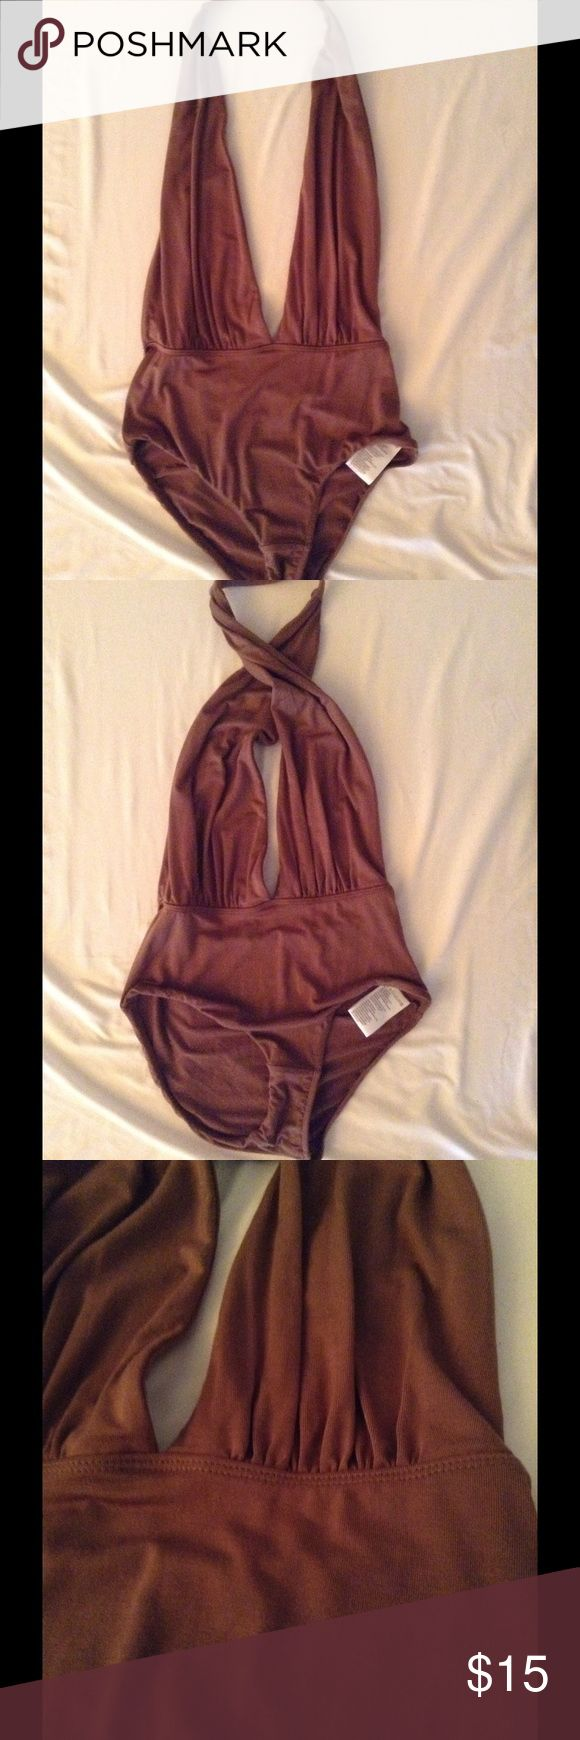 Brown halter bodysuit Very sexy Urban Outfitters Tops